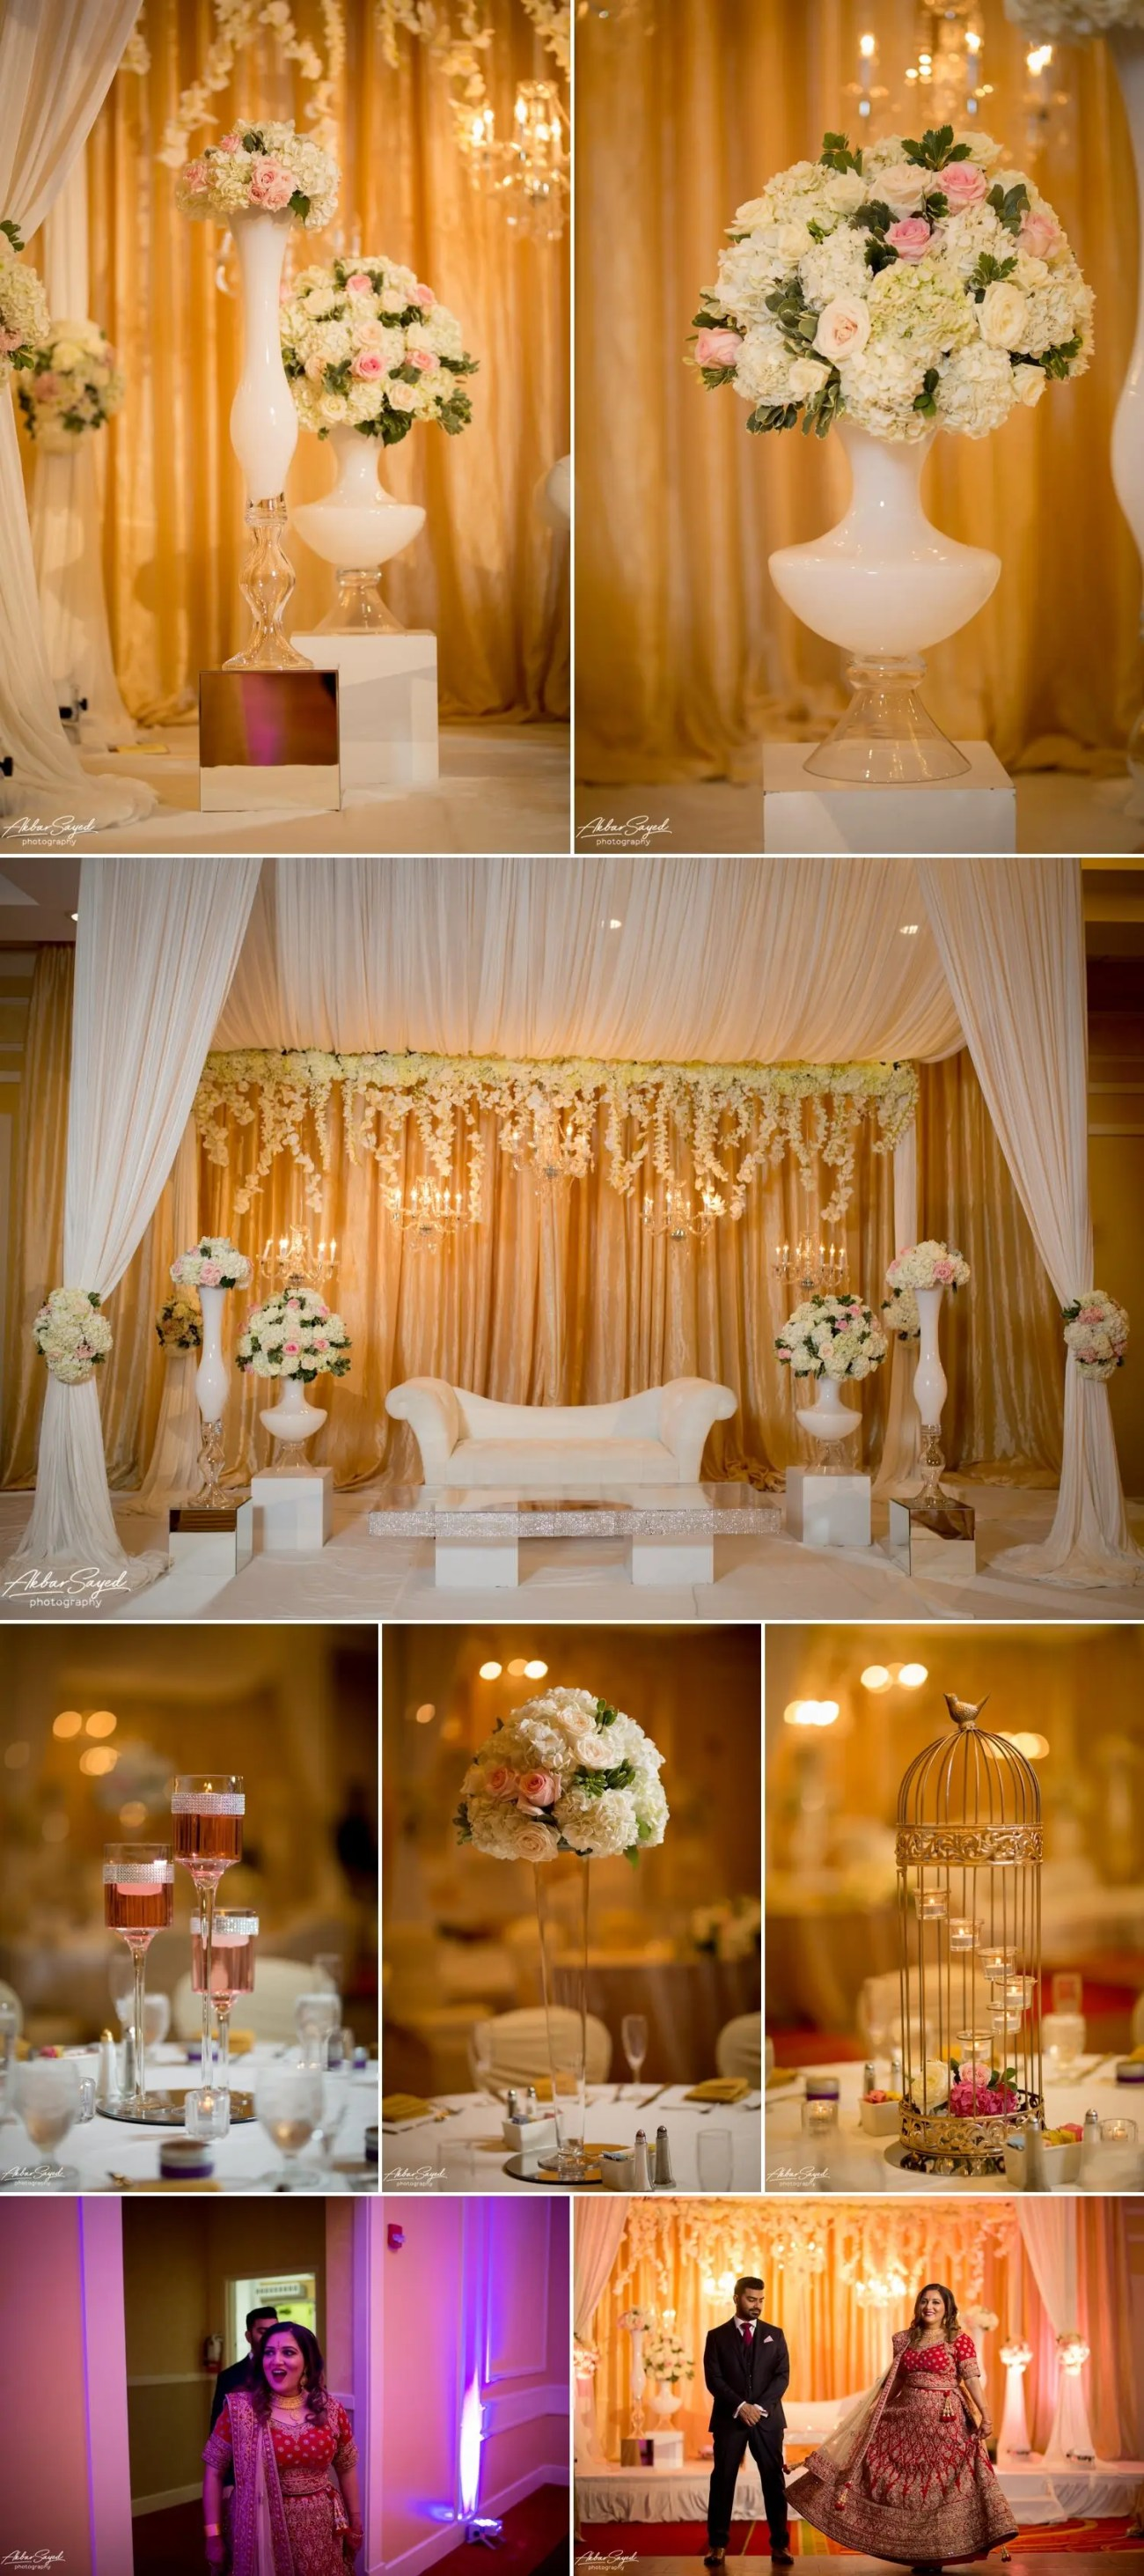 A photo collage of South Asian Hindu wedding decor created by L'Ambiance wedding decor at the BWI Marriott.